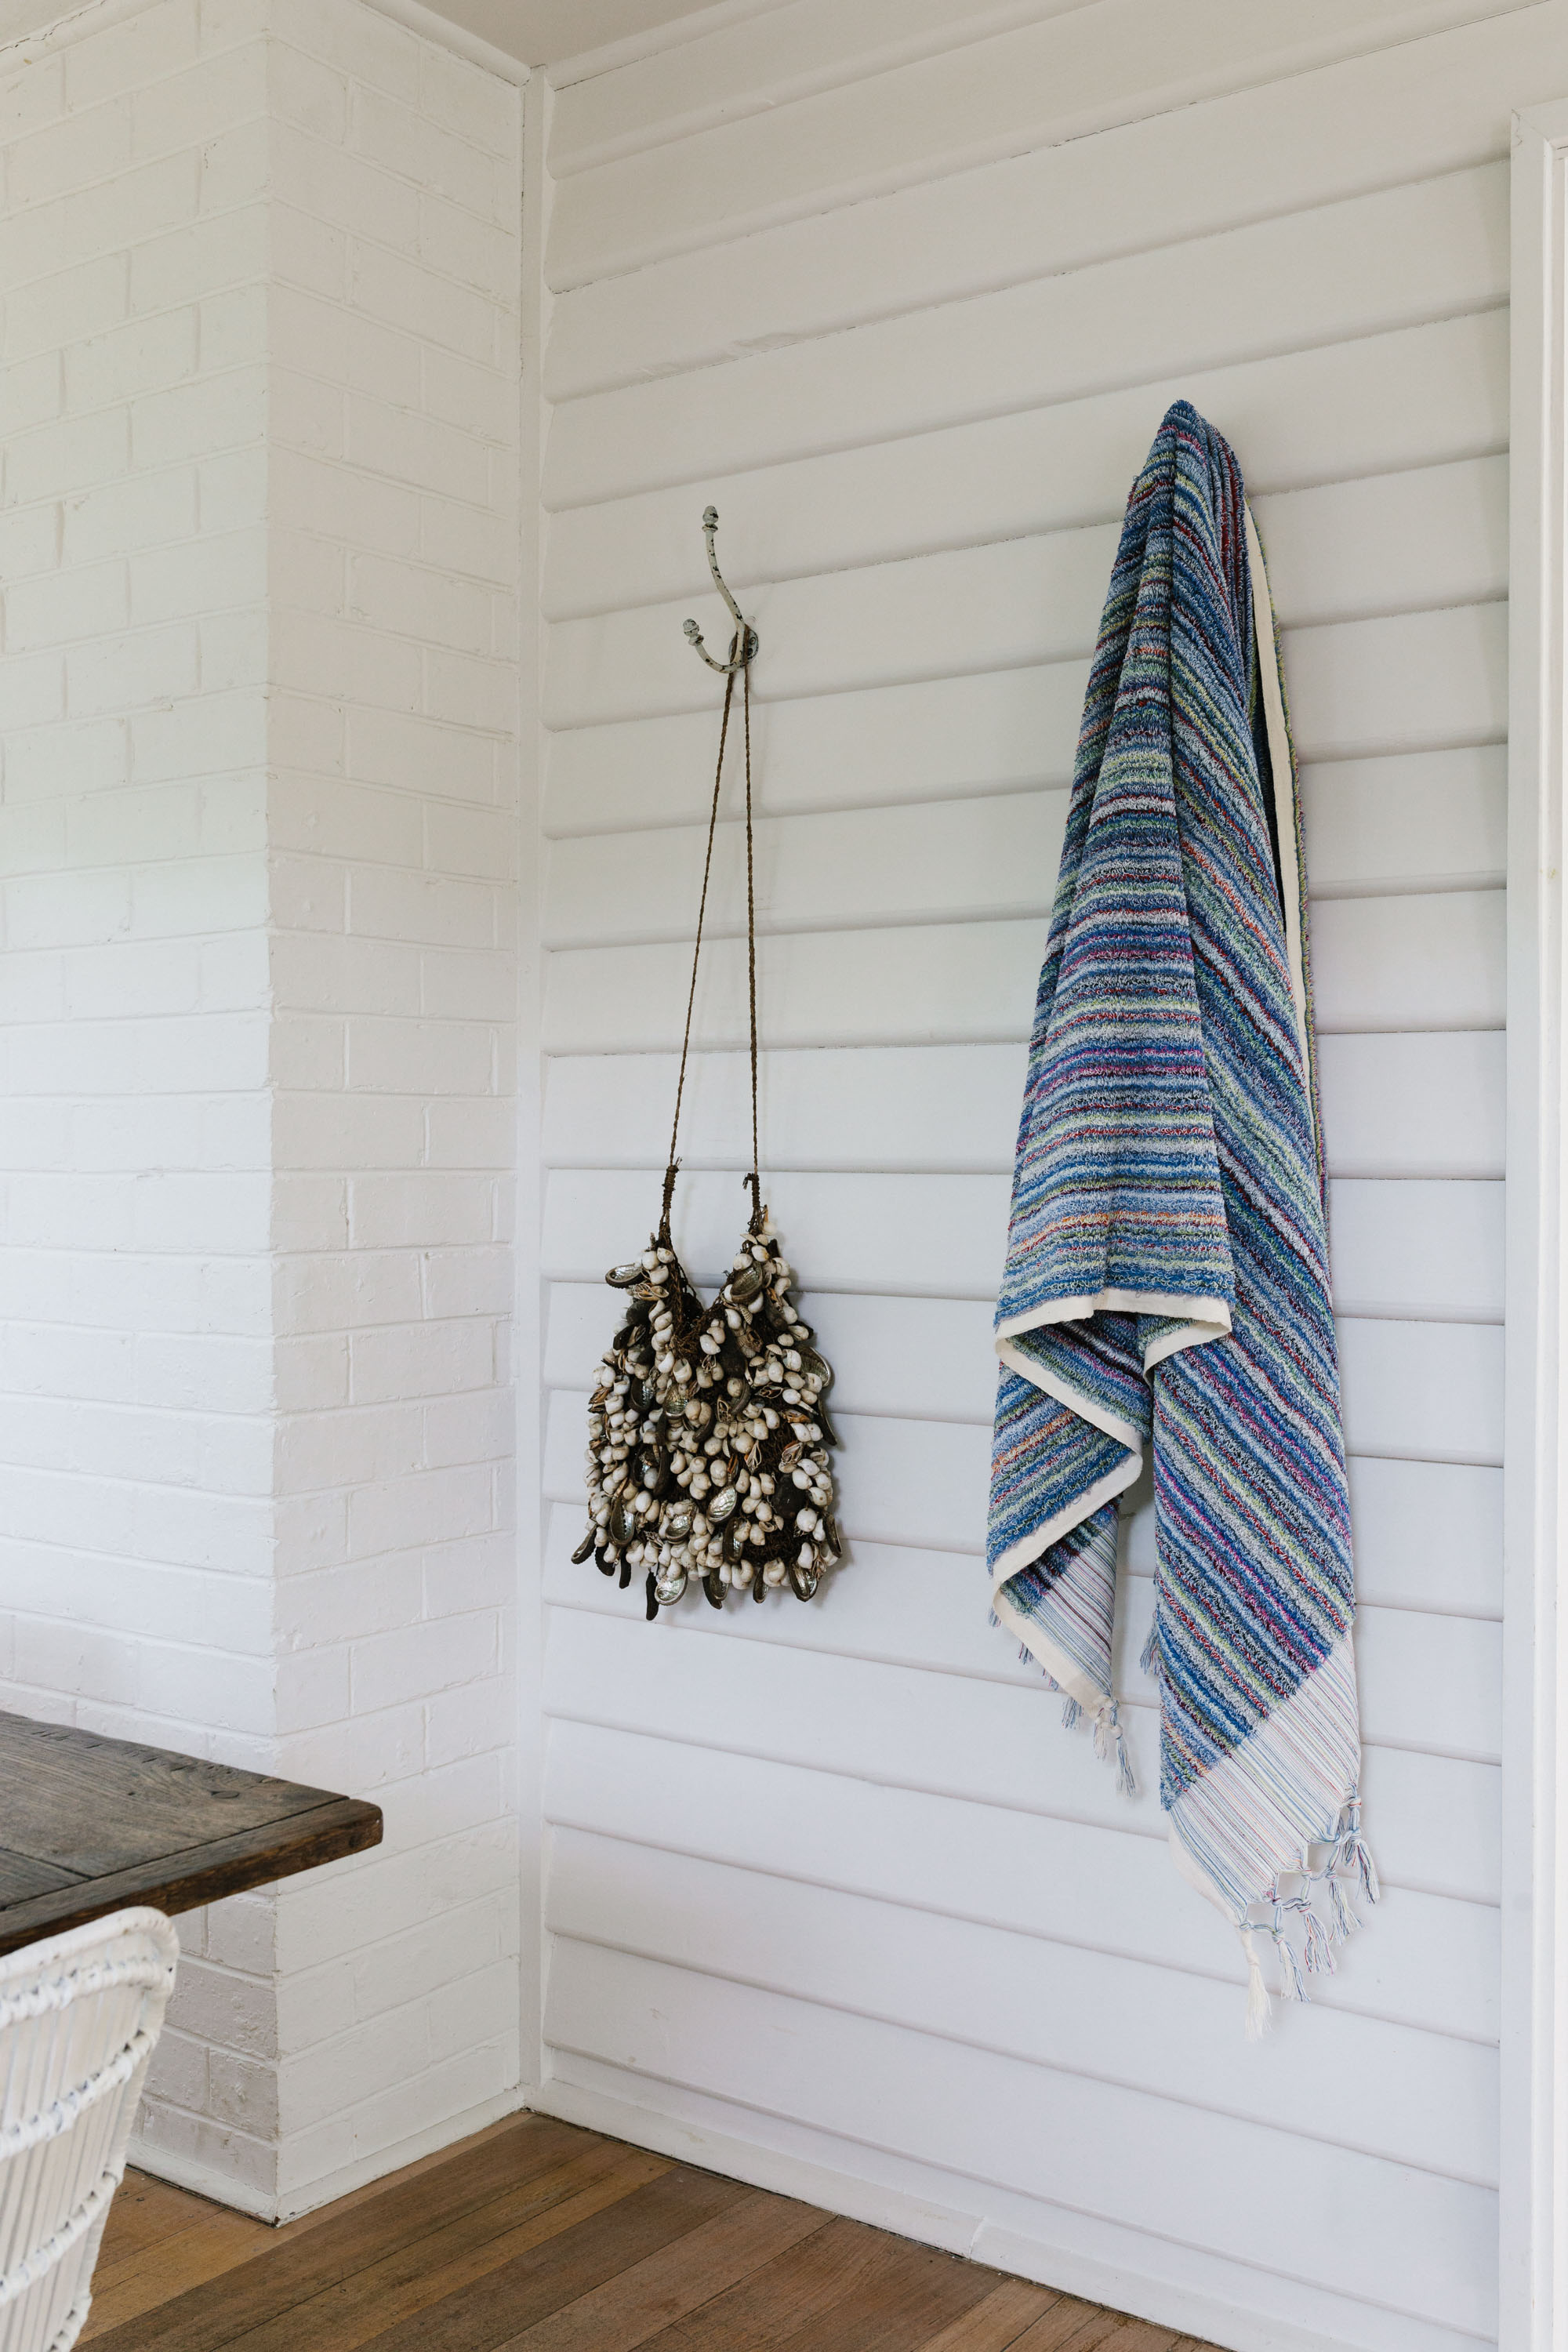 Marnie Hawson for Loom Towels - limited edition hand-loomed bath and beach towels using traditional craftsmanship and the highest quality GOTS certified organic cotton and dyes